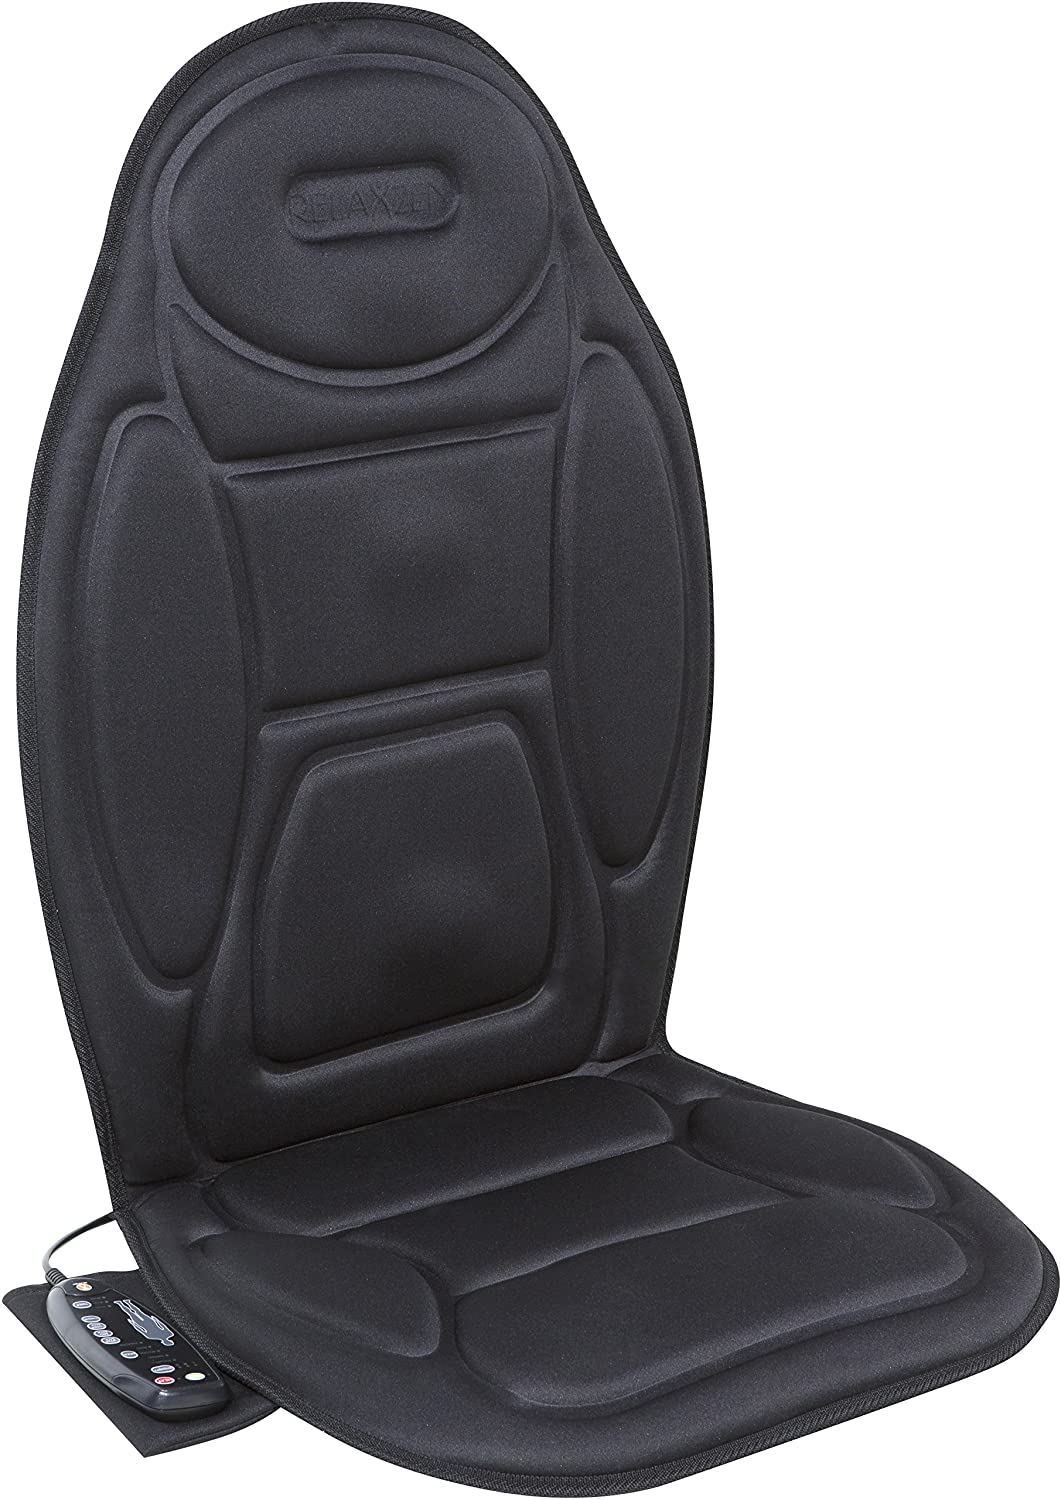 Best Car Seat Massager Reviews: Improve your Driving Experience 3